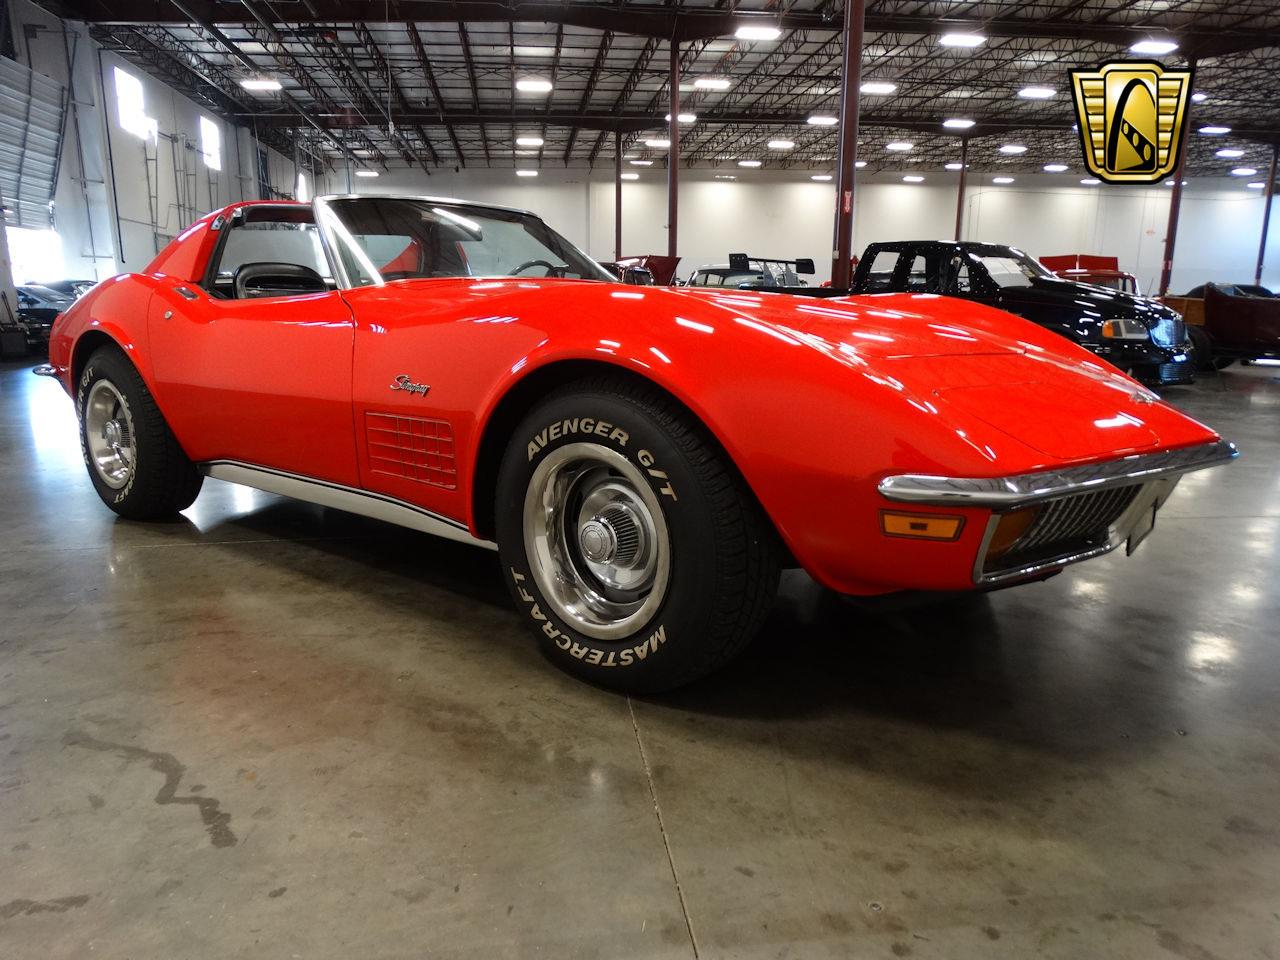 Large Picture of Classic 1972 Chevrolet Corvette located in Tennessee - $26,995.00 Offered by Gateway Classic Cars - Nashville - ME53